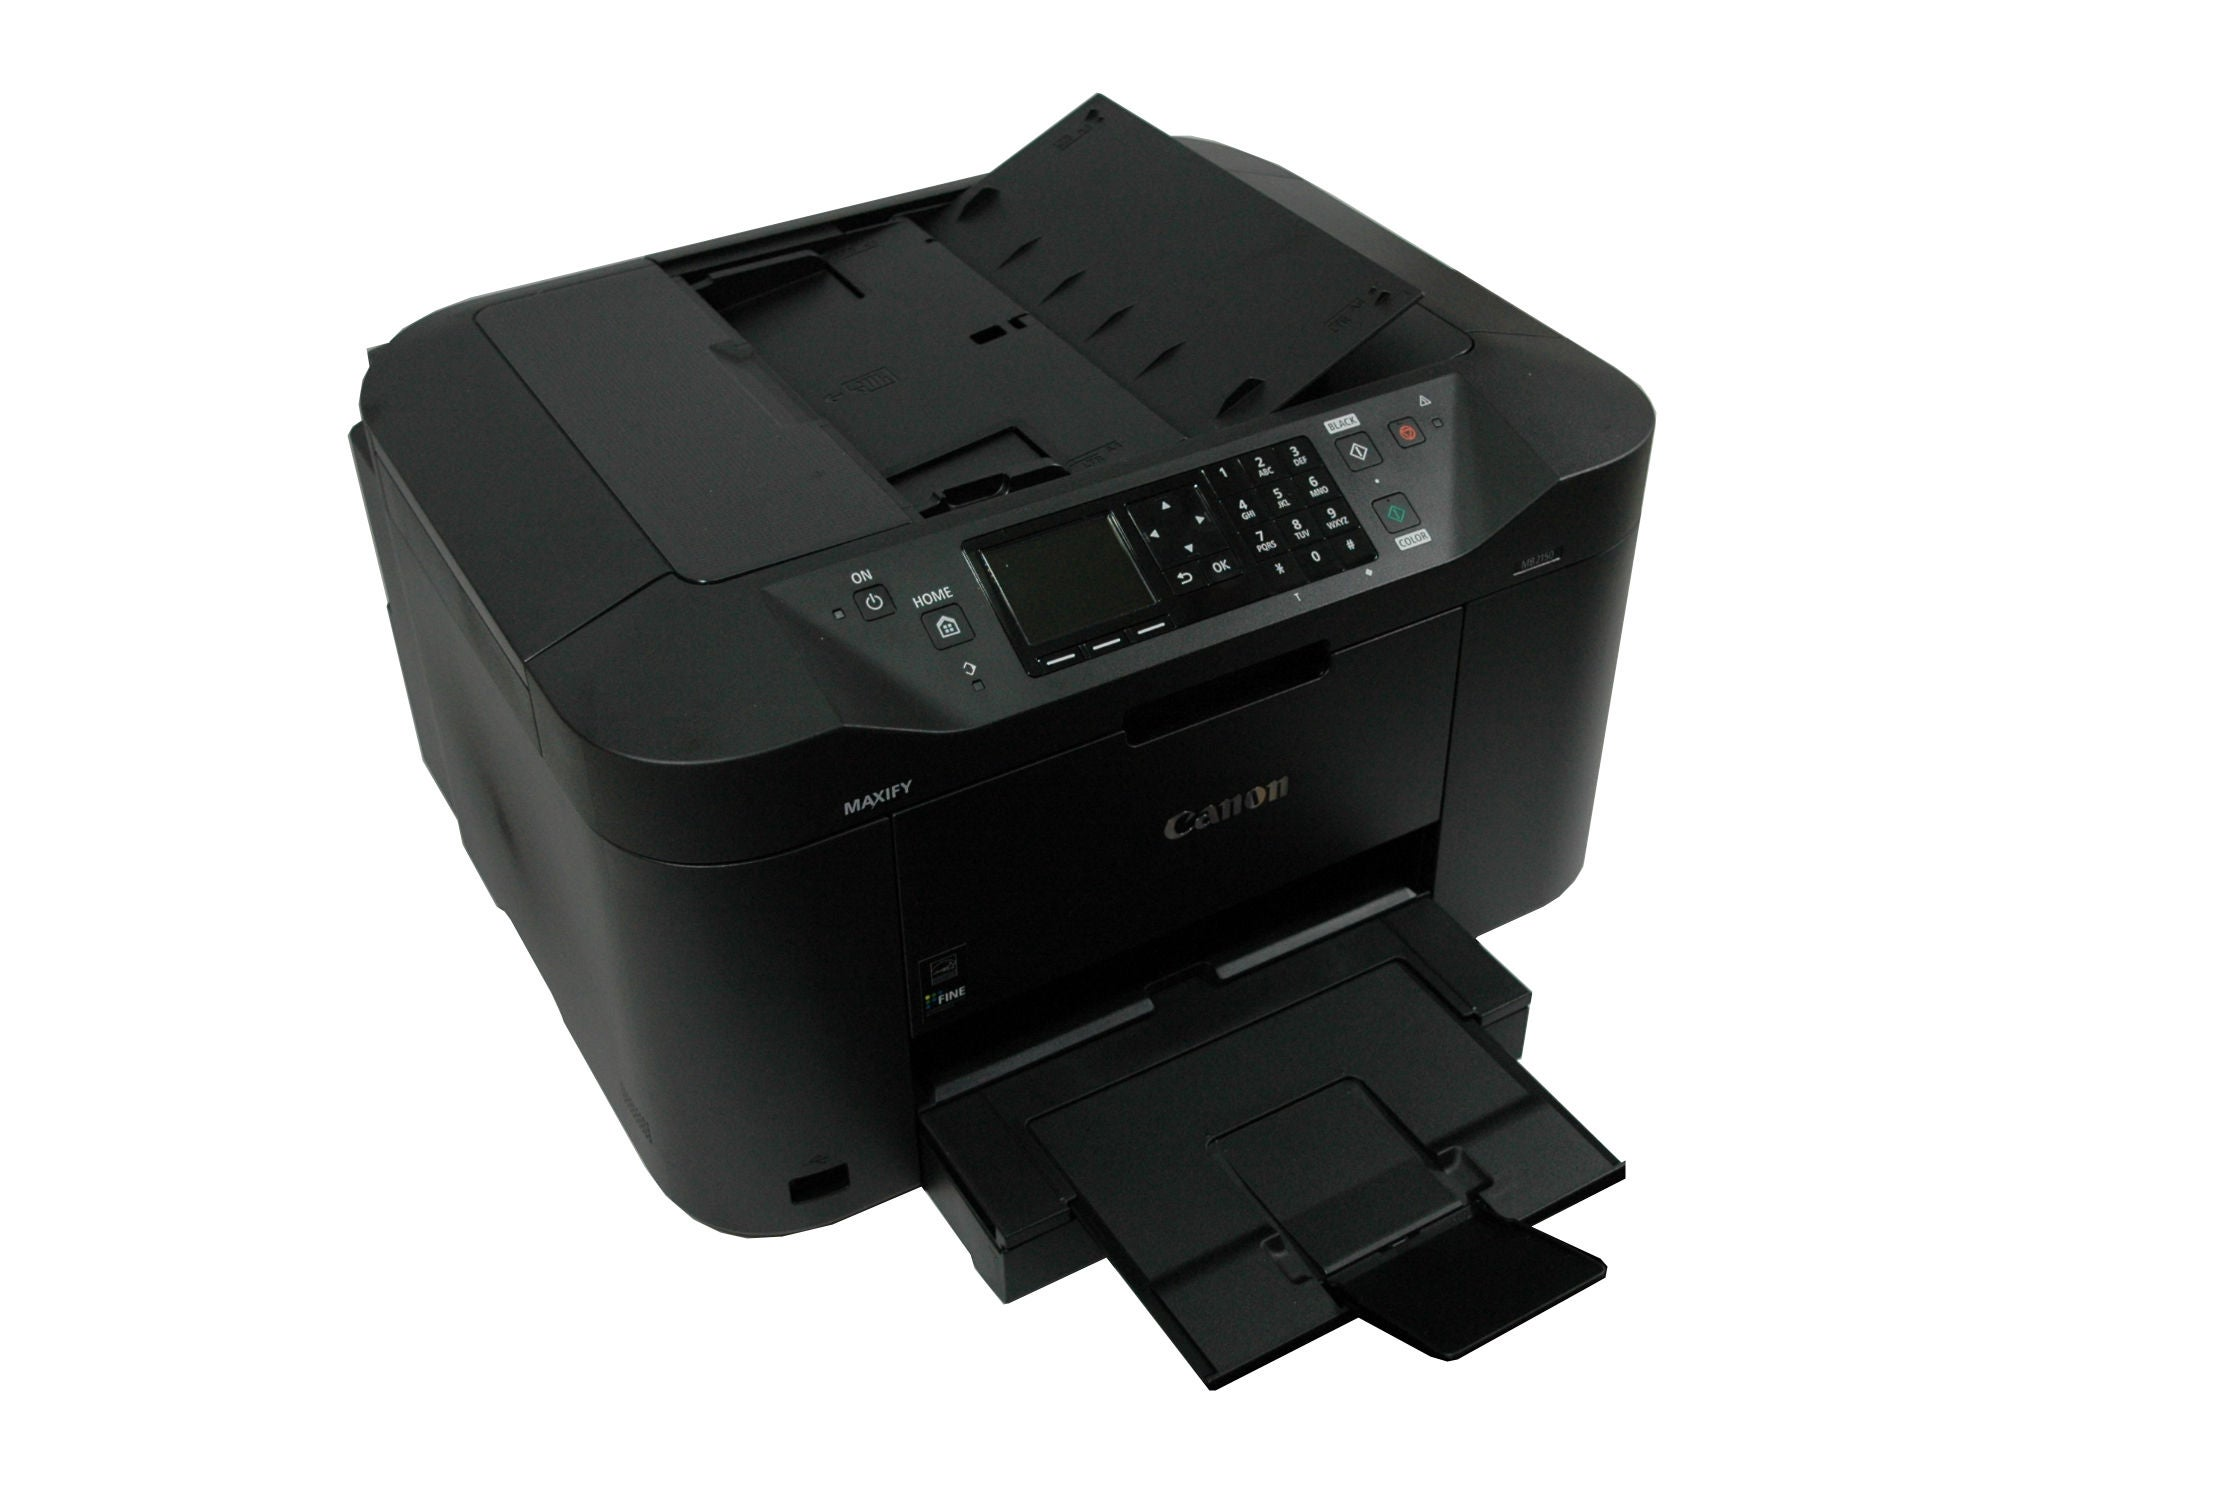 CANON MP 2150 WINDOWS 7 X64 DRIVER